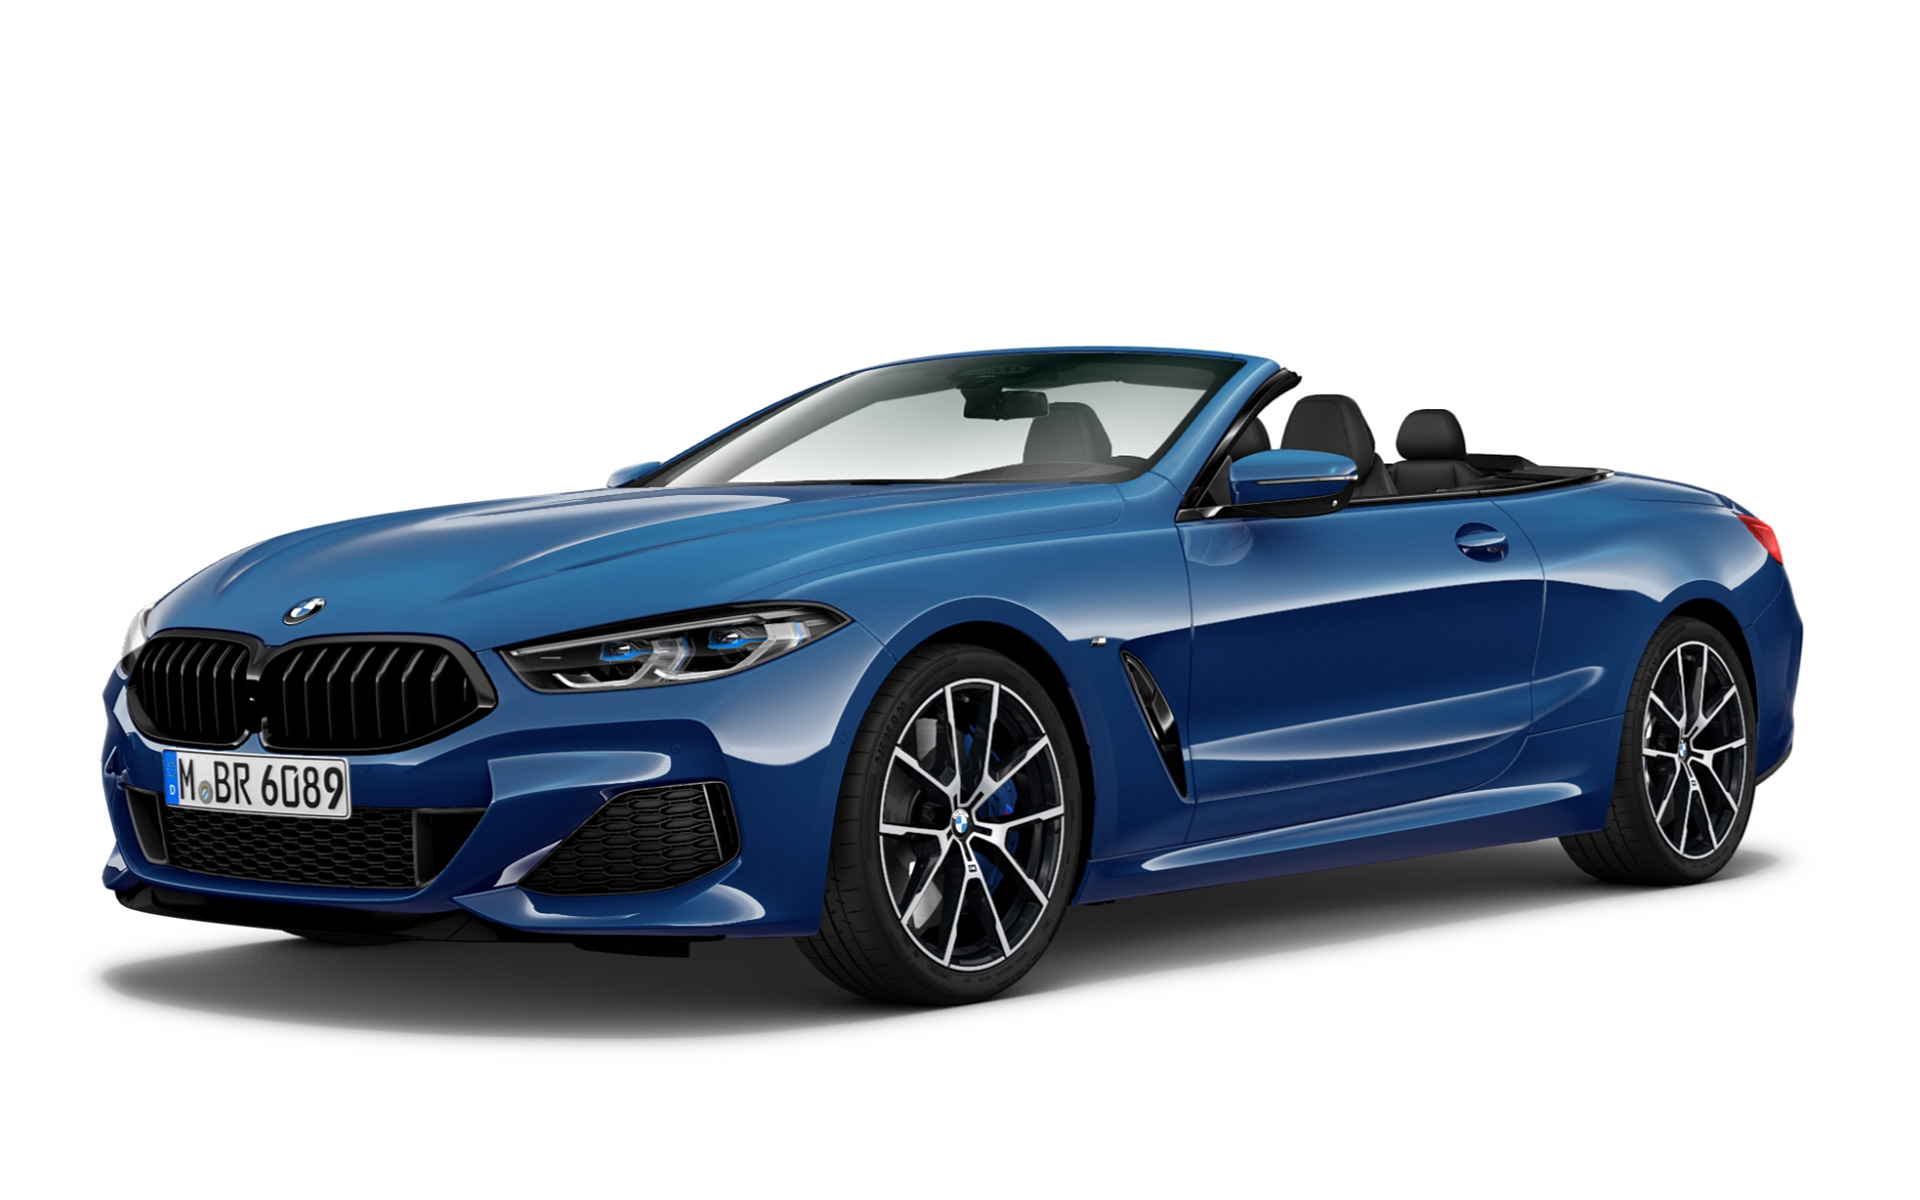 M850i xDrive Convertible - Sonic Speed Blue